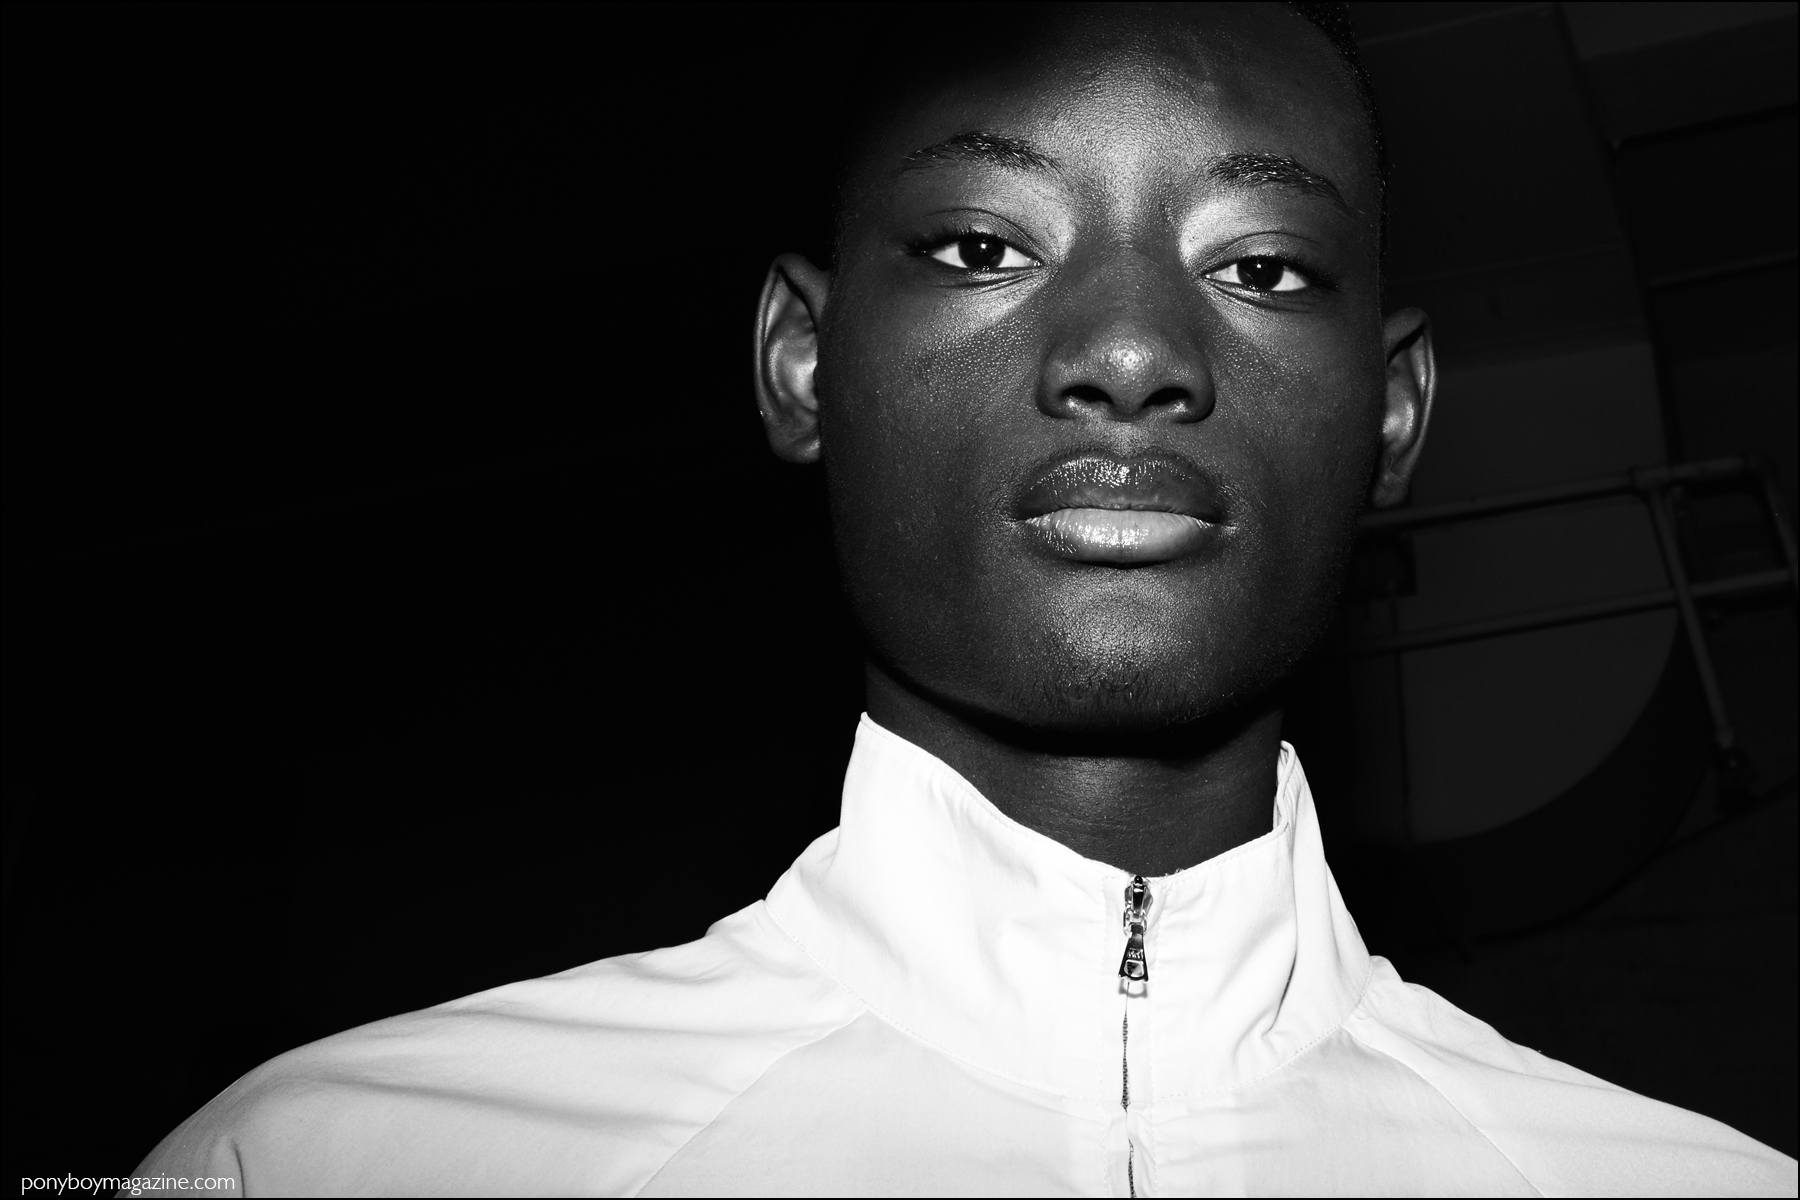 Model Youssouf Bamba photographed backstage at Duckie Brown F/W16 menswear show. Photography by Alexander Thompson for Ponyboy magazine NY.